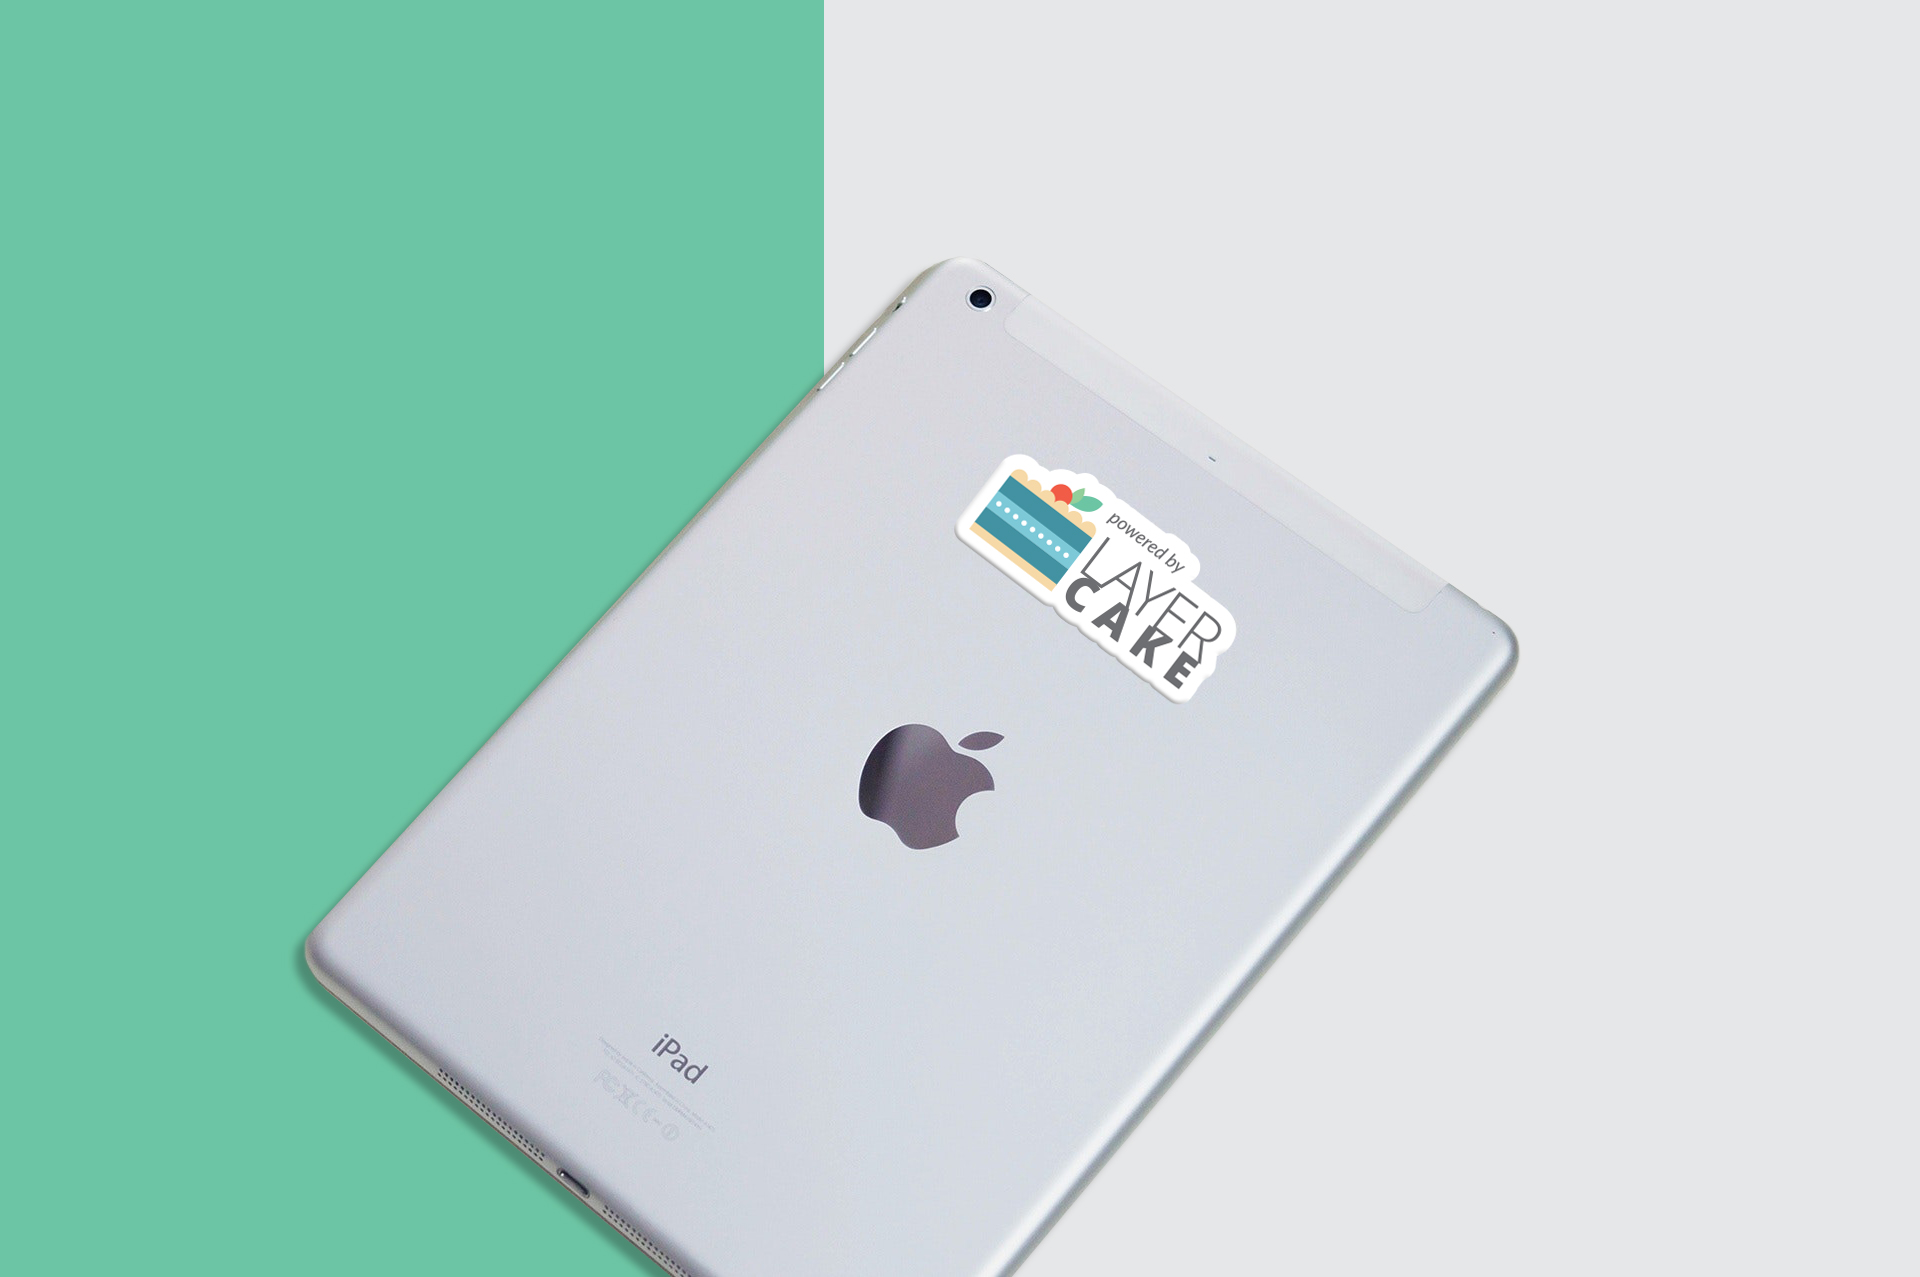 apple-devices-electronics-163098_LayerCake-sticker-3.jpg